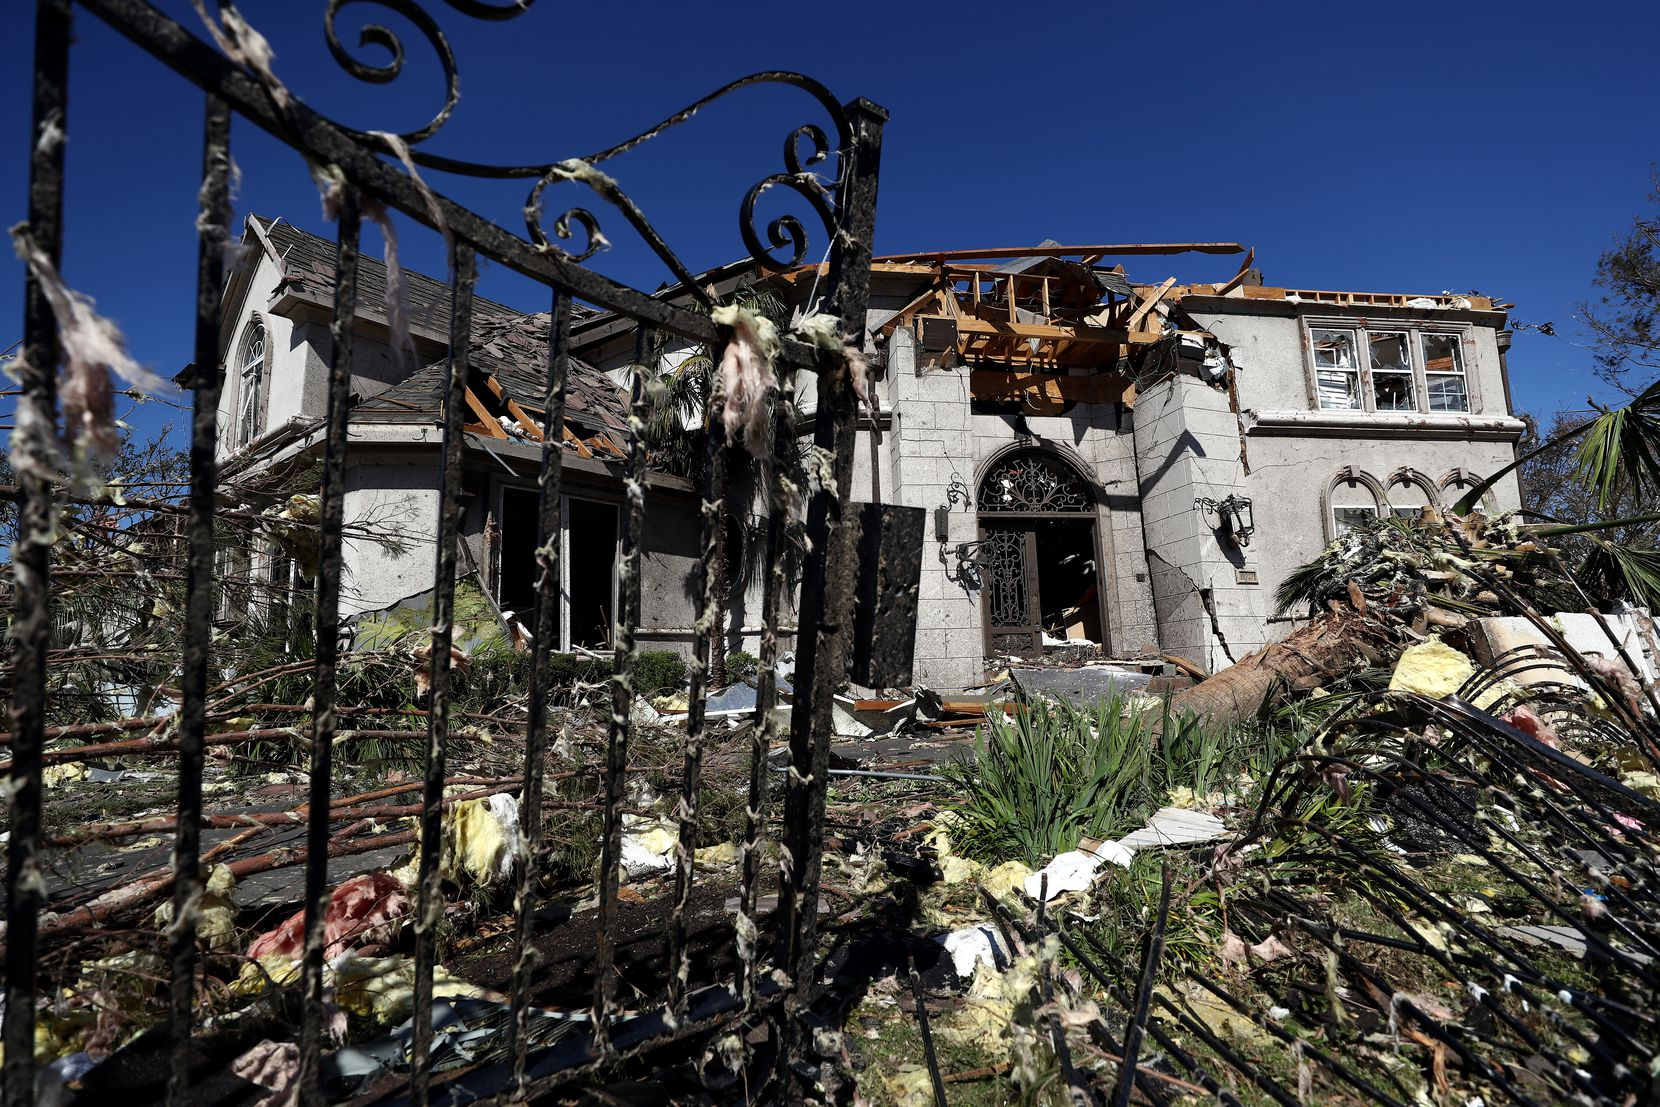 A tornado damaged home owned by NHL hockey player Tyler Seguin of the Dallas Stars on October 21, 2019 in Dallas, Texas. Seguin was currently selling the home and no one was in the home when the tornado hit.